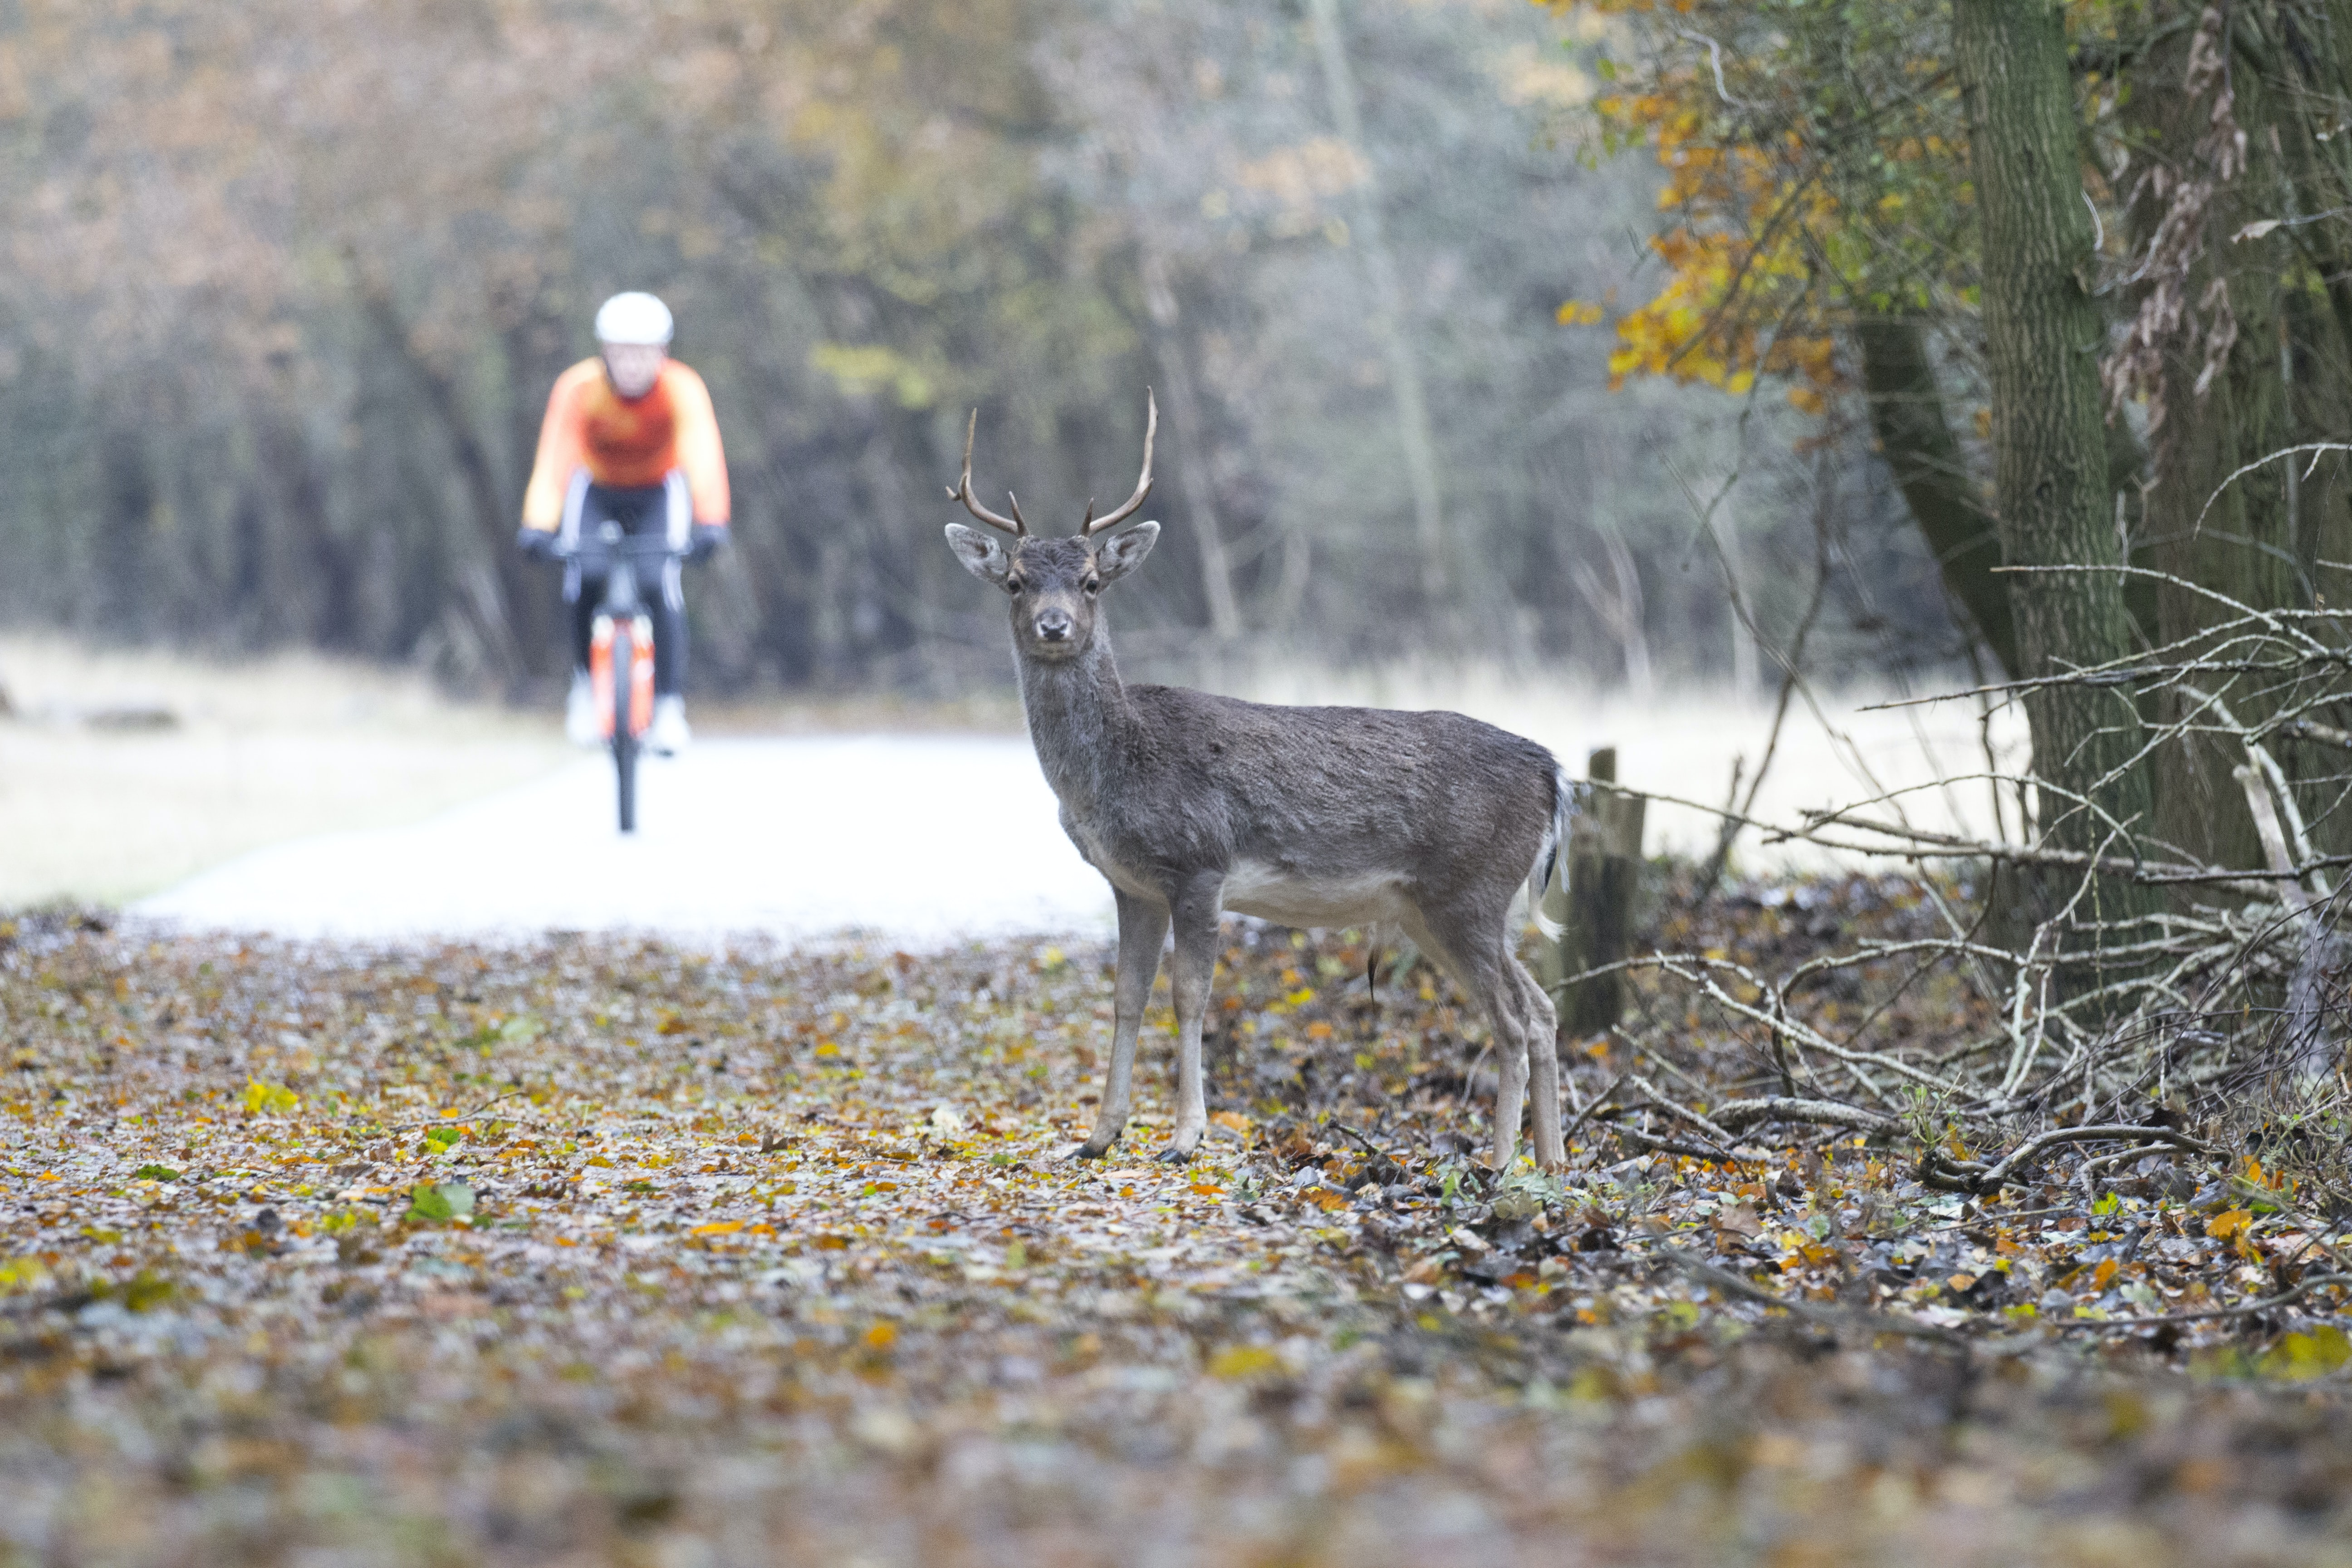 man riding bike near gray deer at daytime